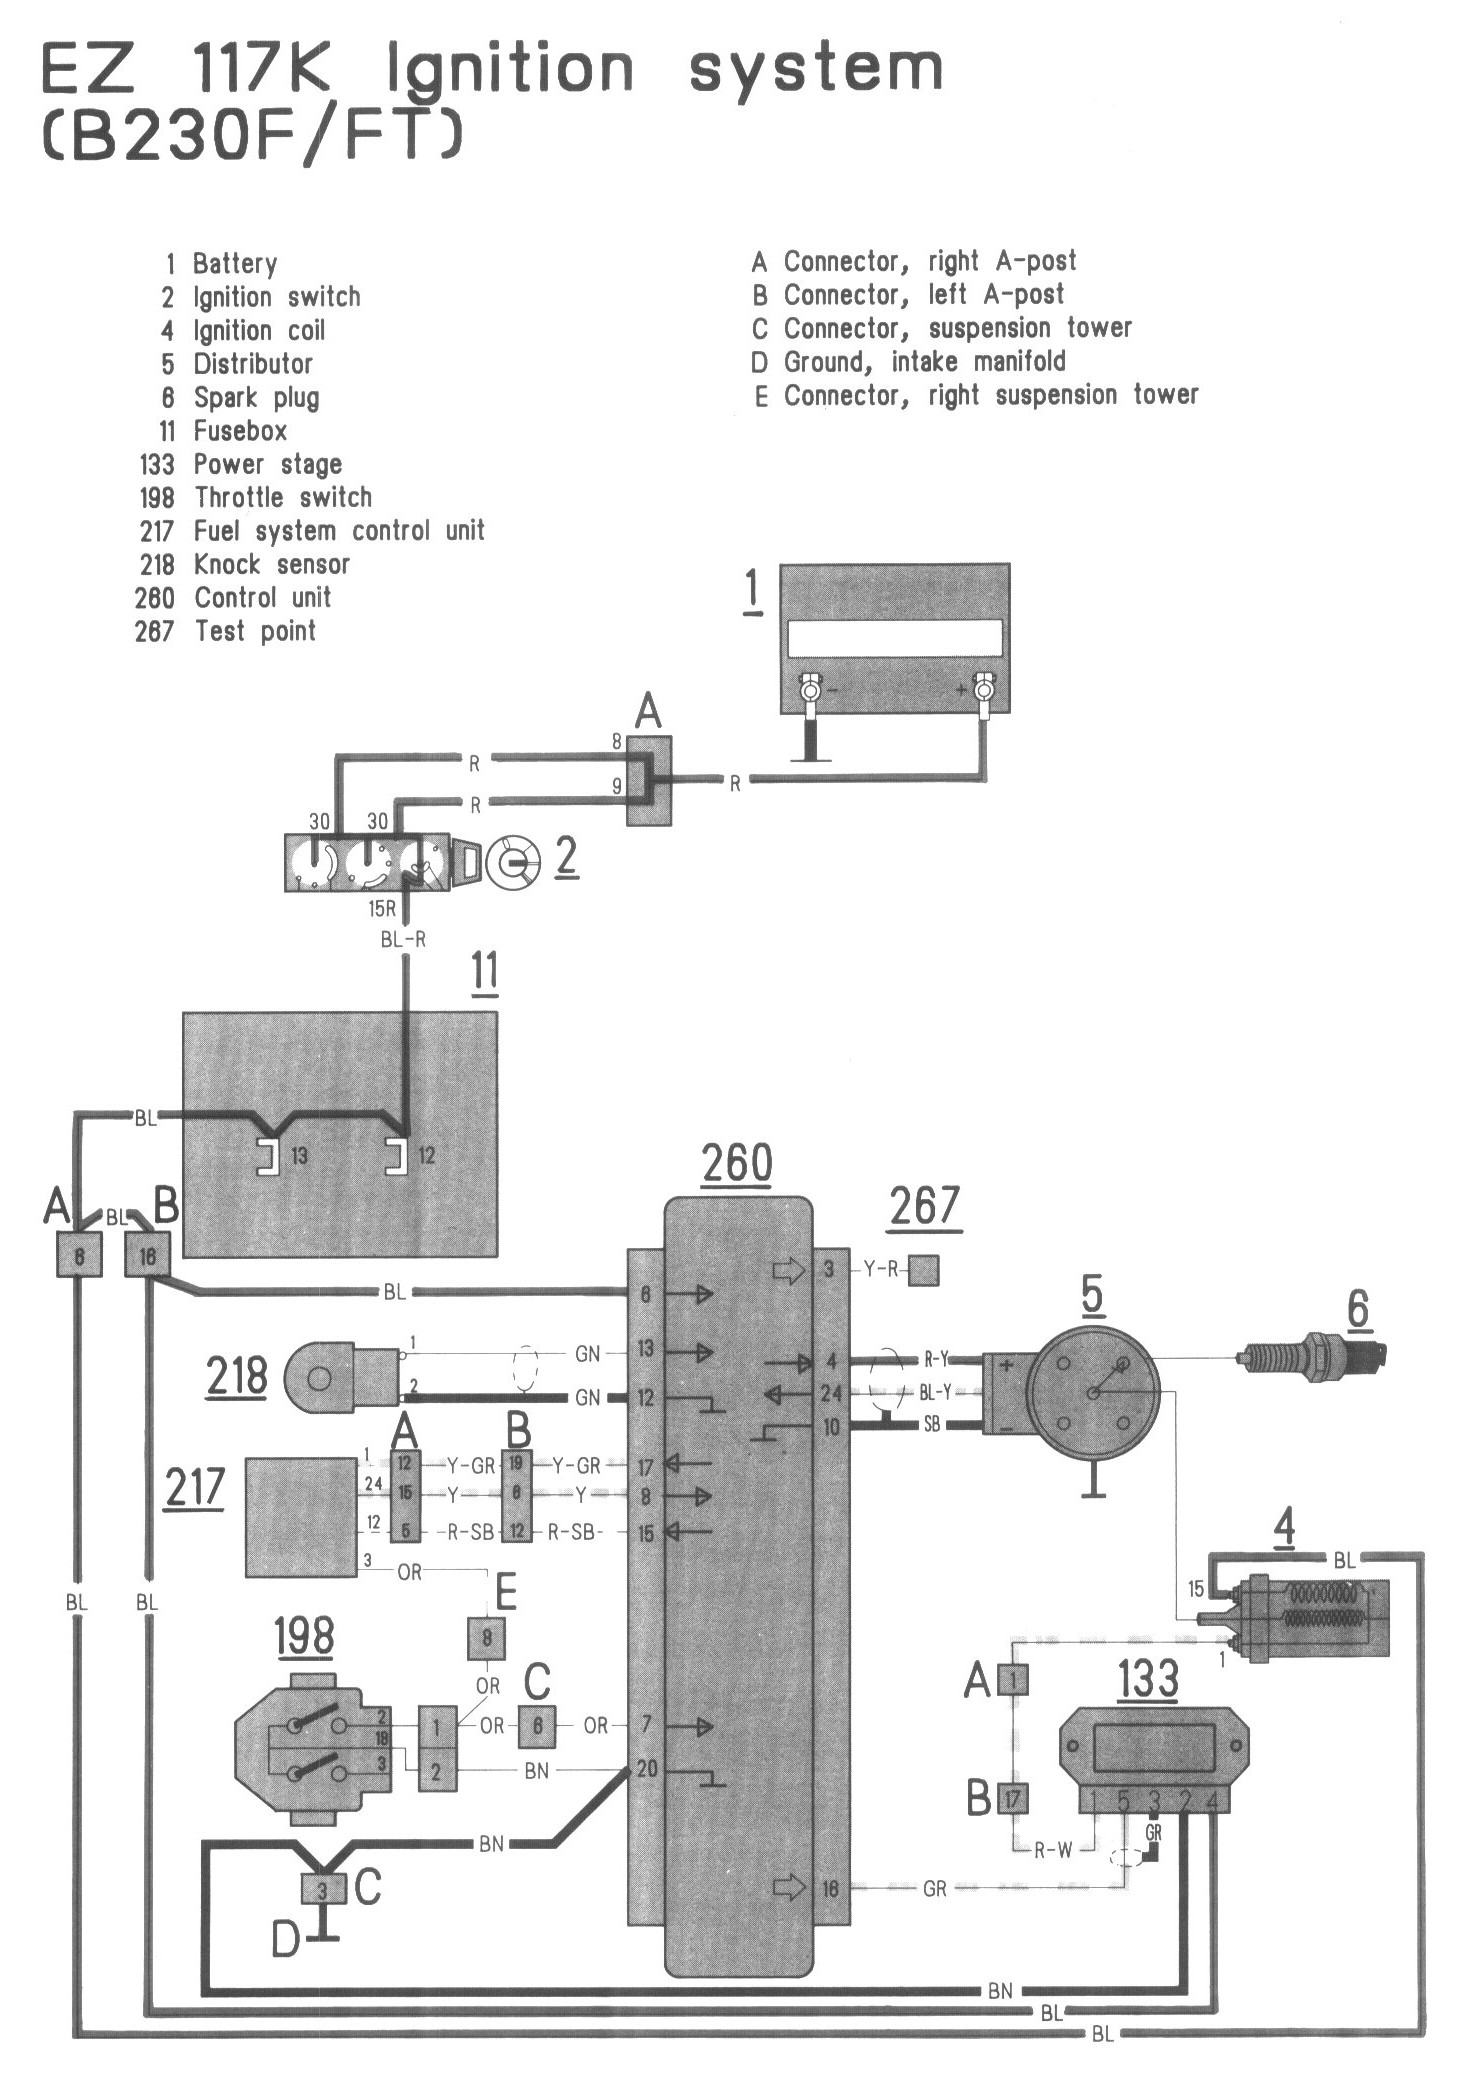 volvo start wiring diagram onan remote start wiring diagram i own a 1986 volvo 740 gle with a b230f engine. i had a ...